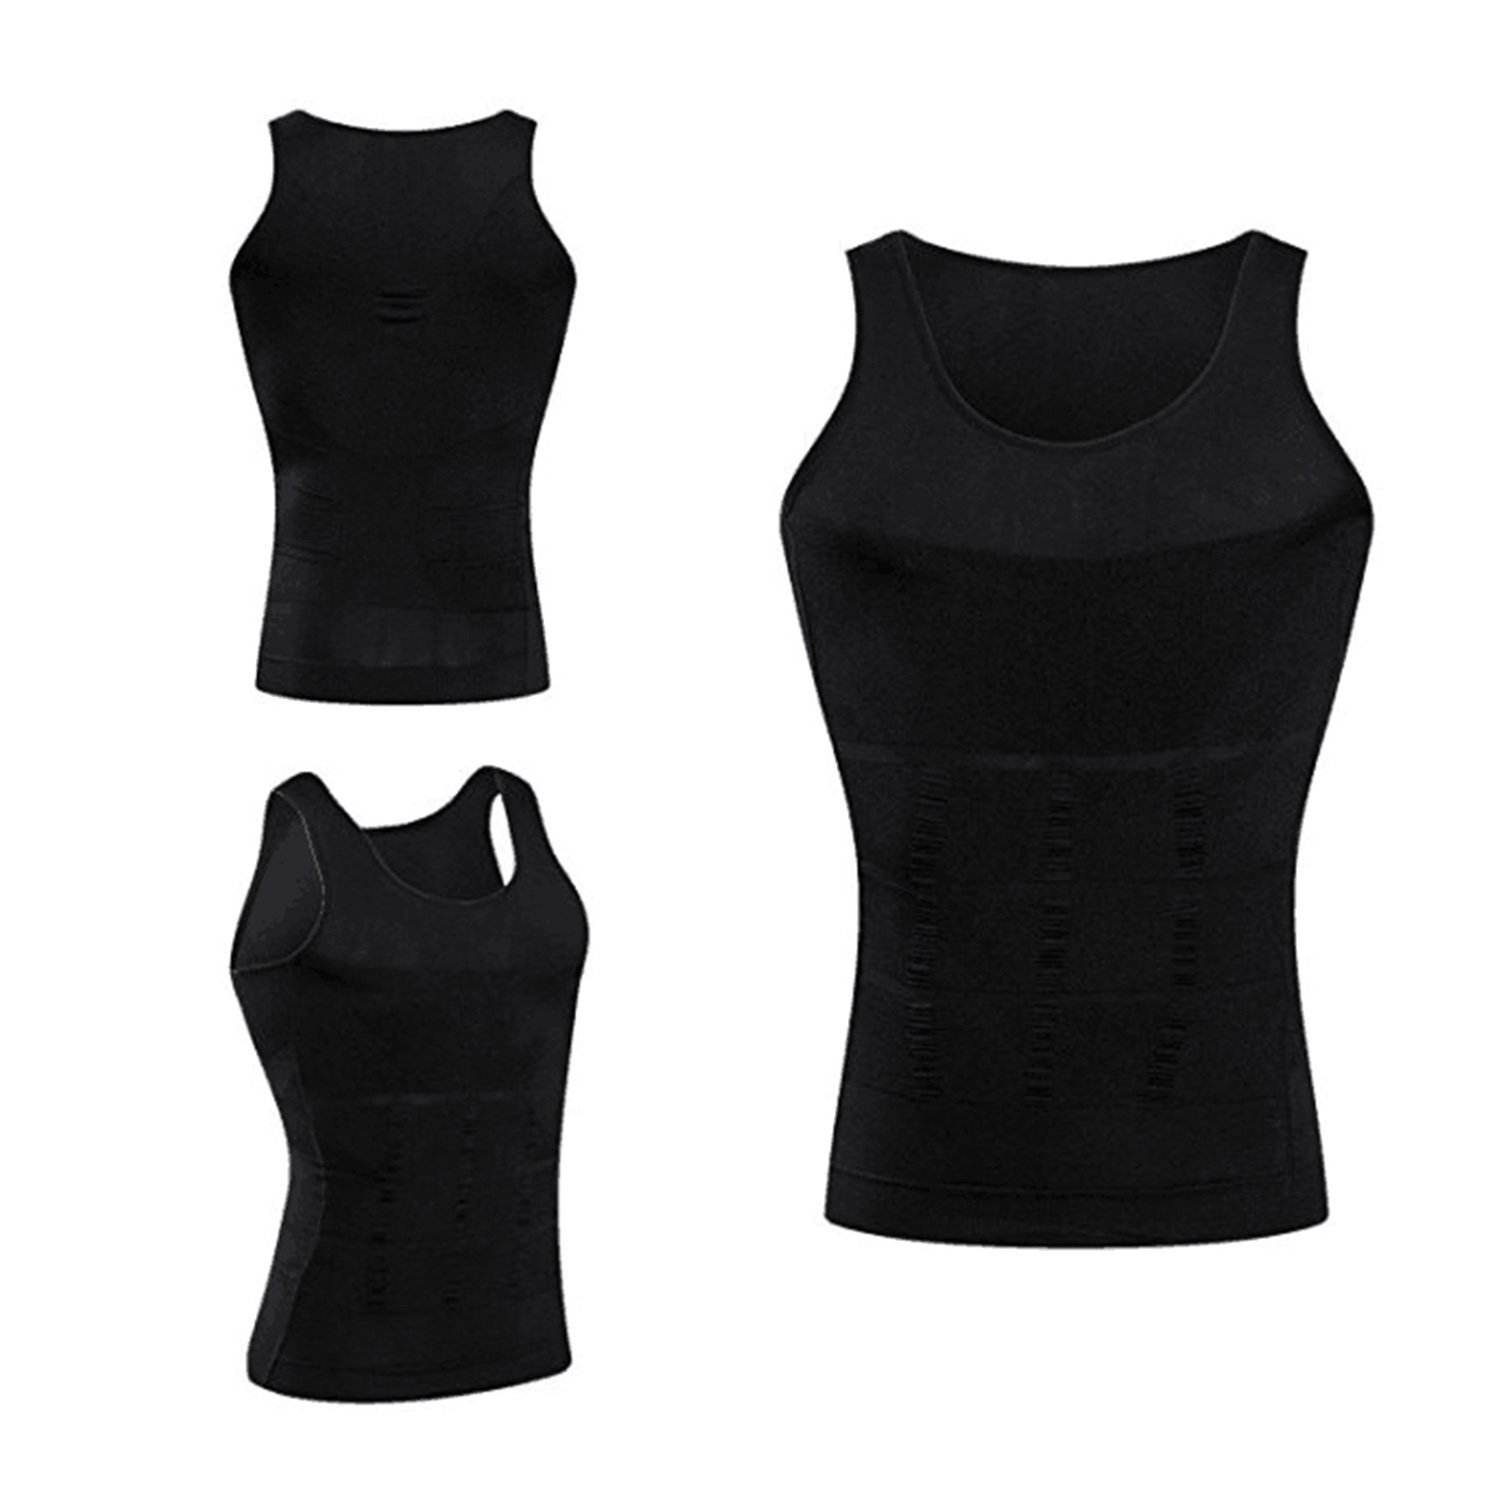 Men's Belly Shaper ~ Great For Work Attire!